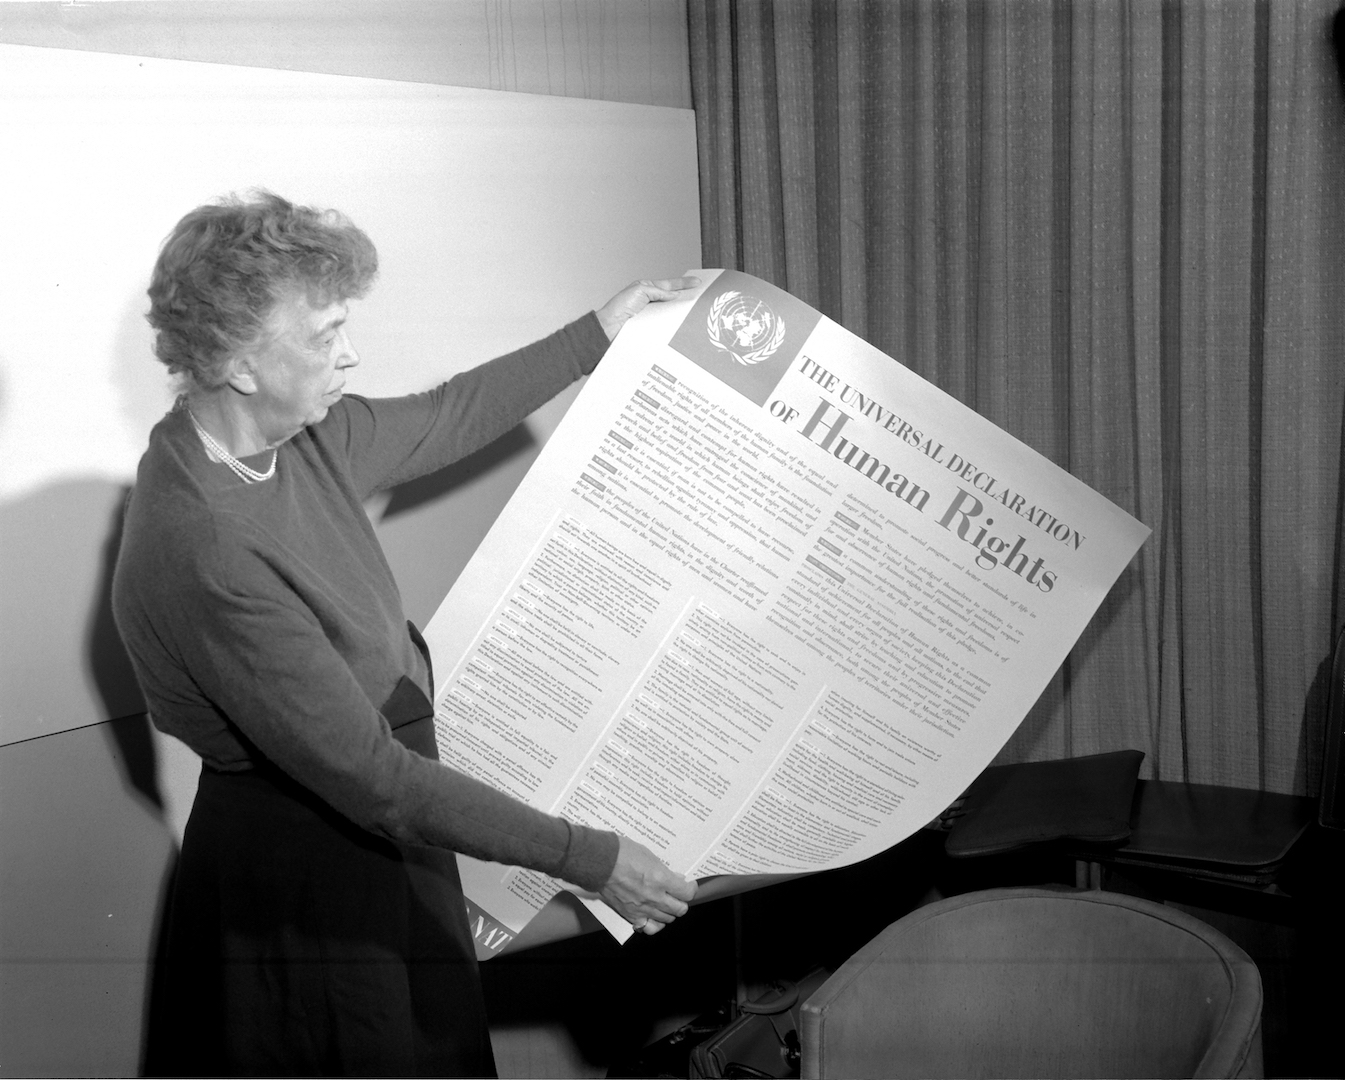 Mrs. Eleanor Roosevelt of the United States holding a Declaration of Human Rights poster in English.